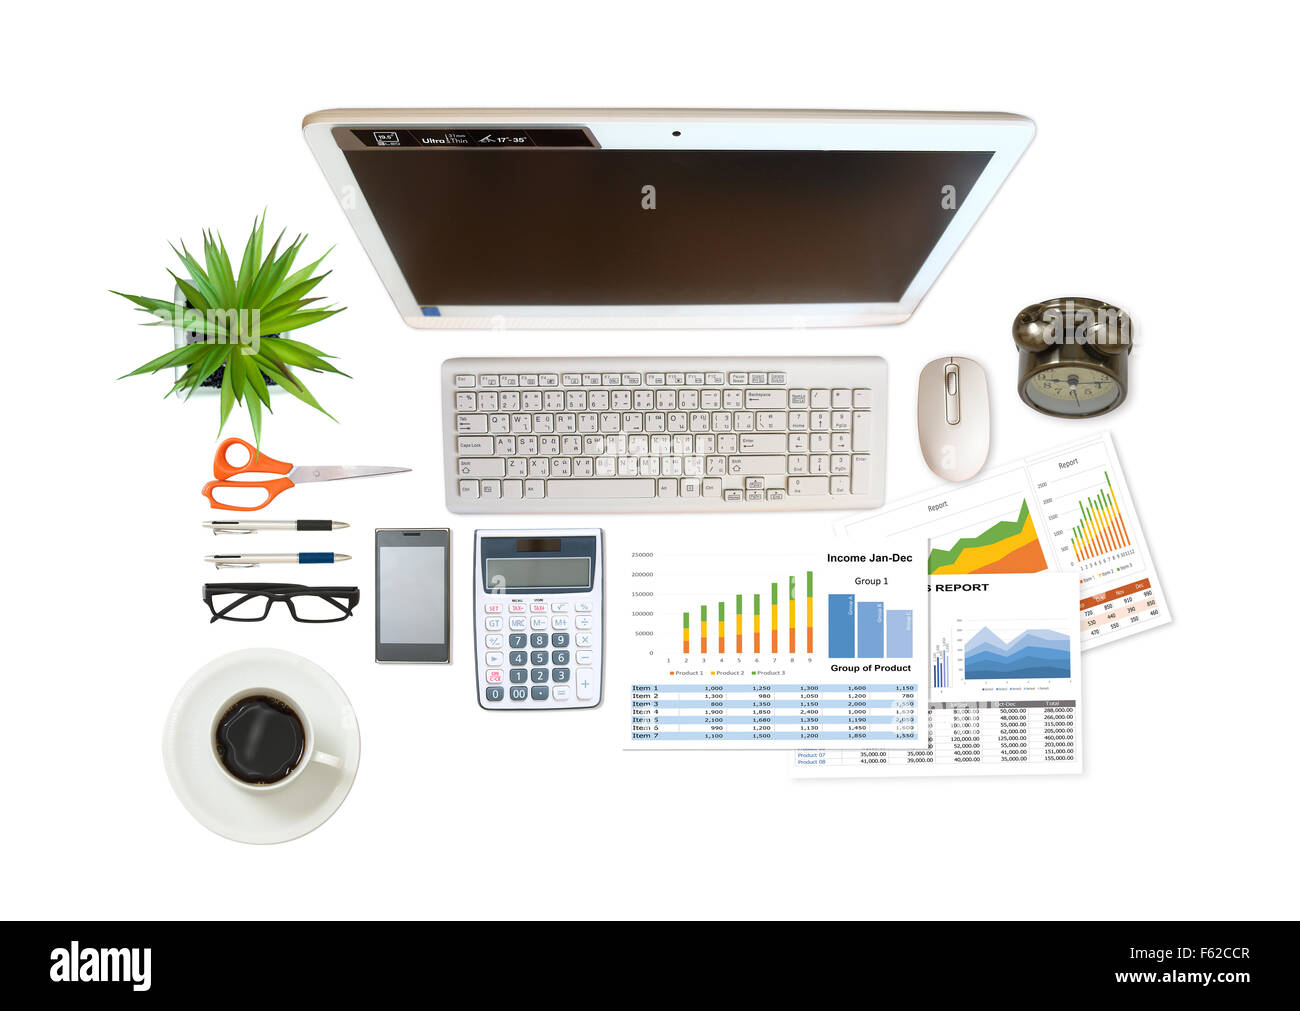 image of business and financial report on white background Stock Photo